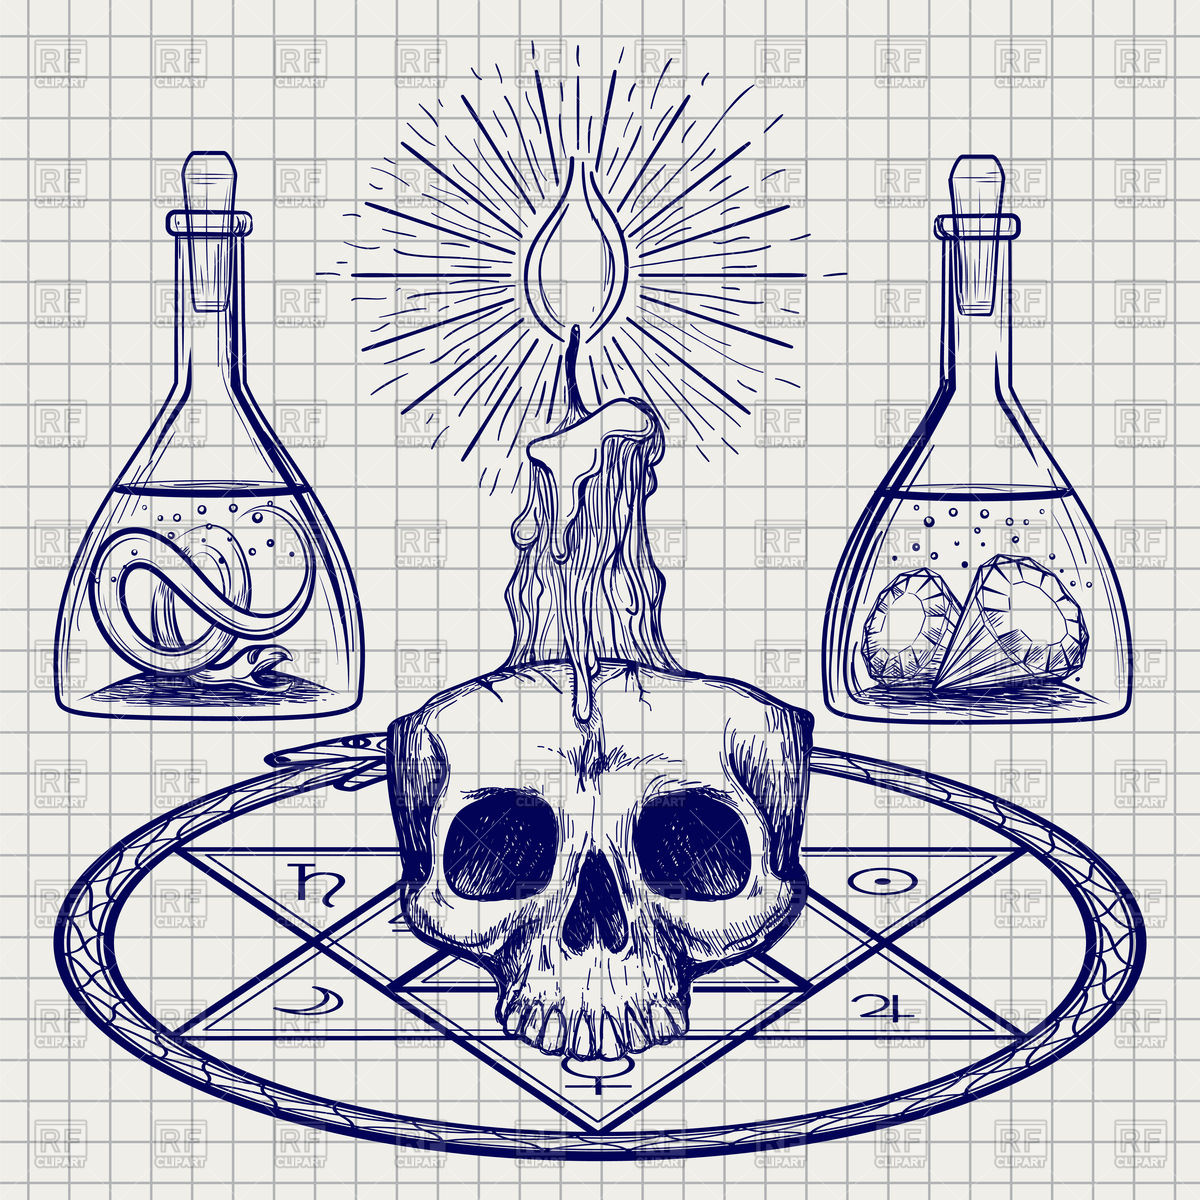 1200x1200 Sketch With Skull, Candle And Occult Elements In Doodle Style